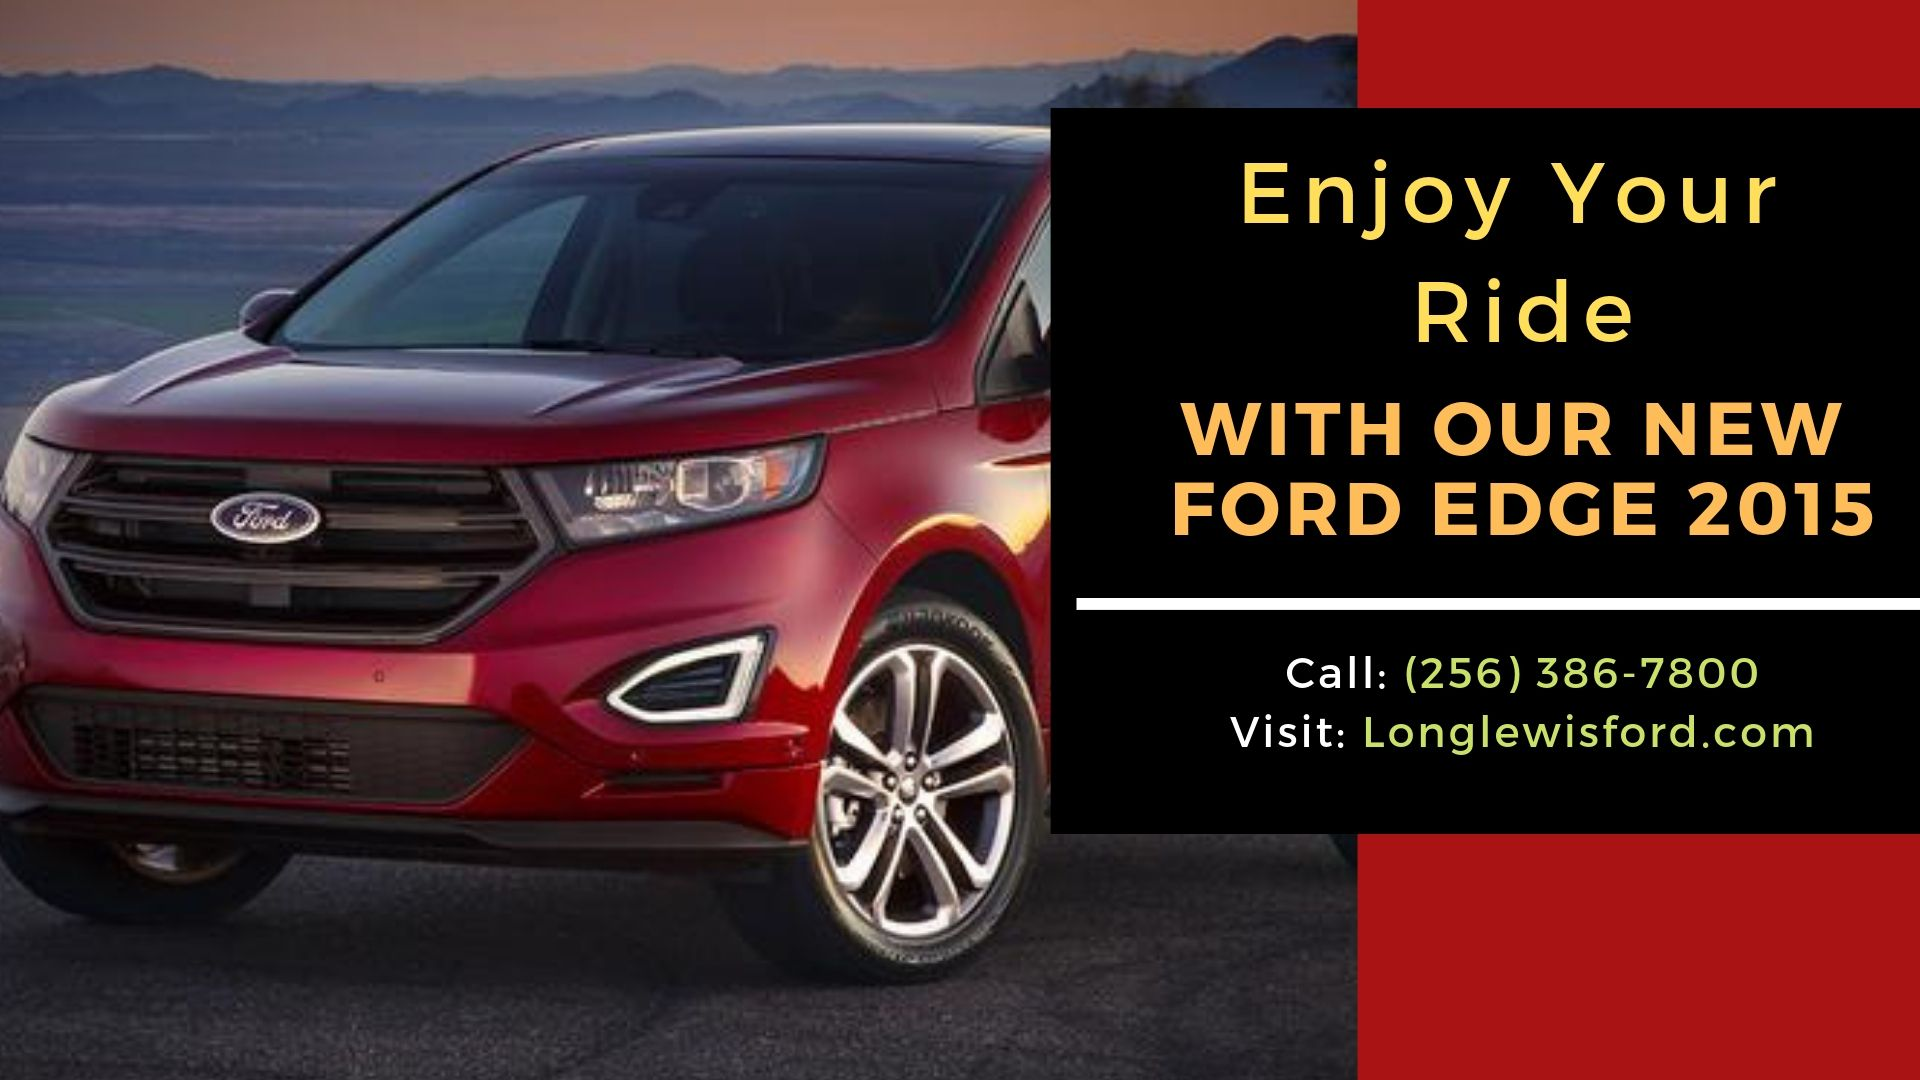 Do You Need Standard Ford Edge 2015 At Long Lewis Ford We Offer